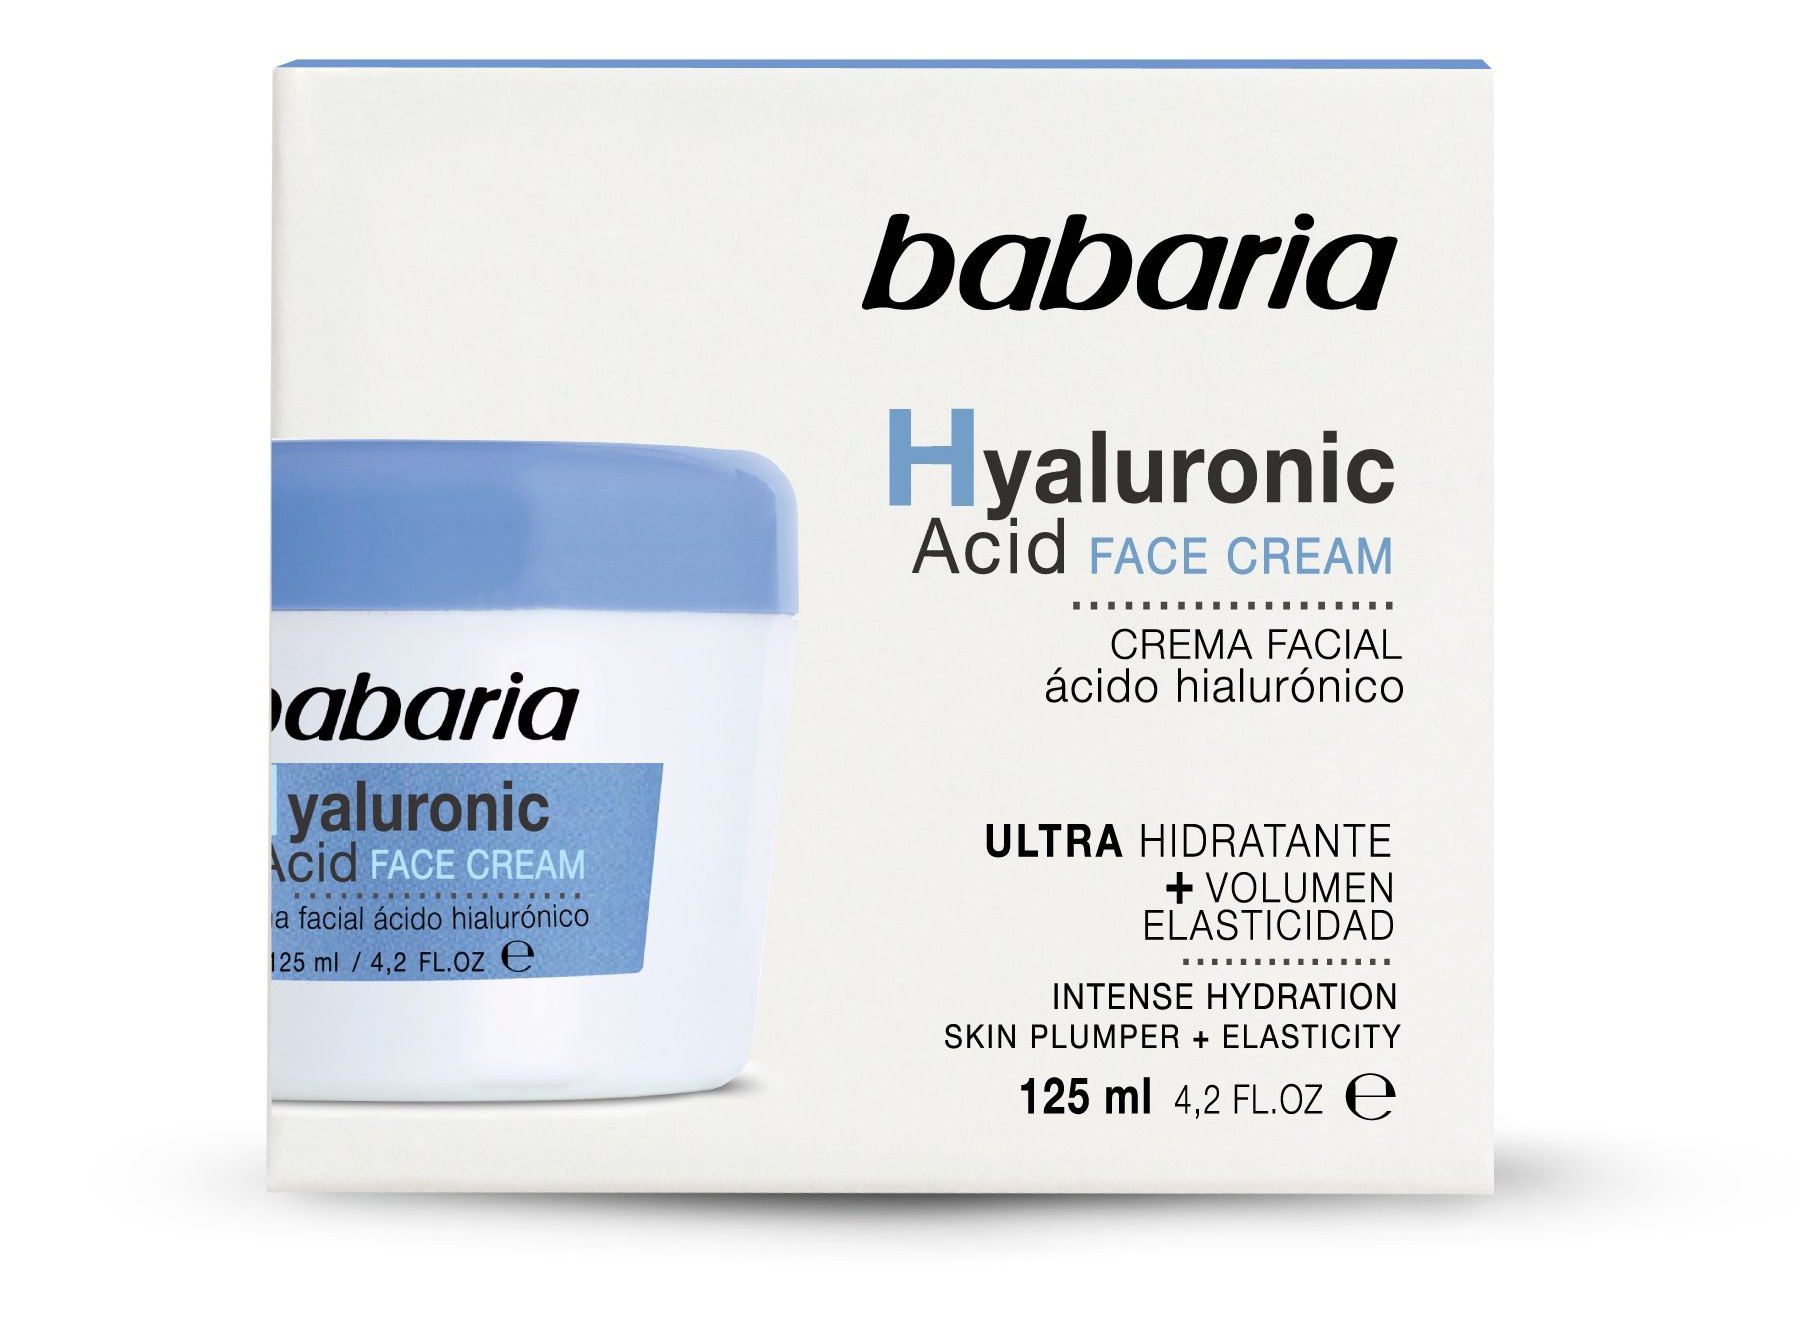 Babaria Hyaluronic Acid Face Cream